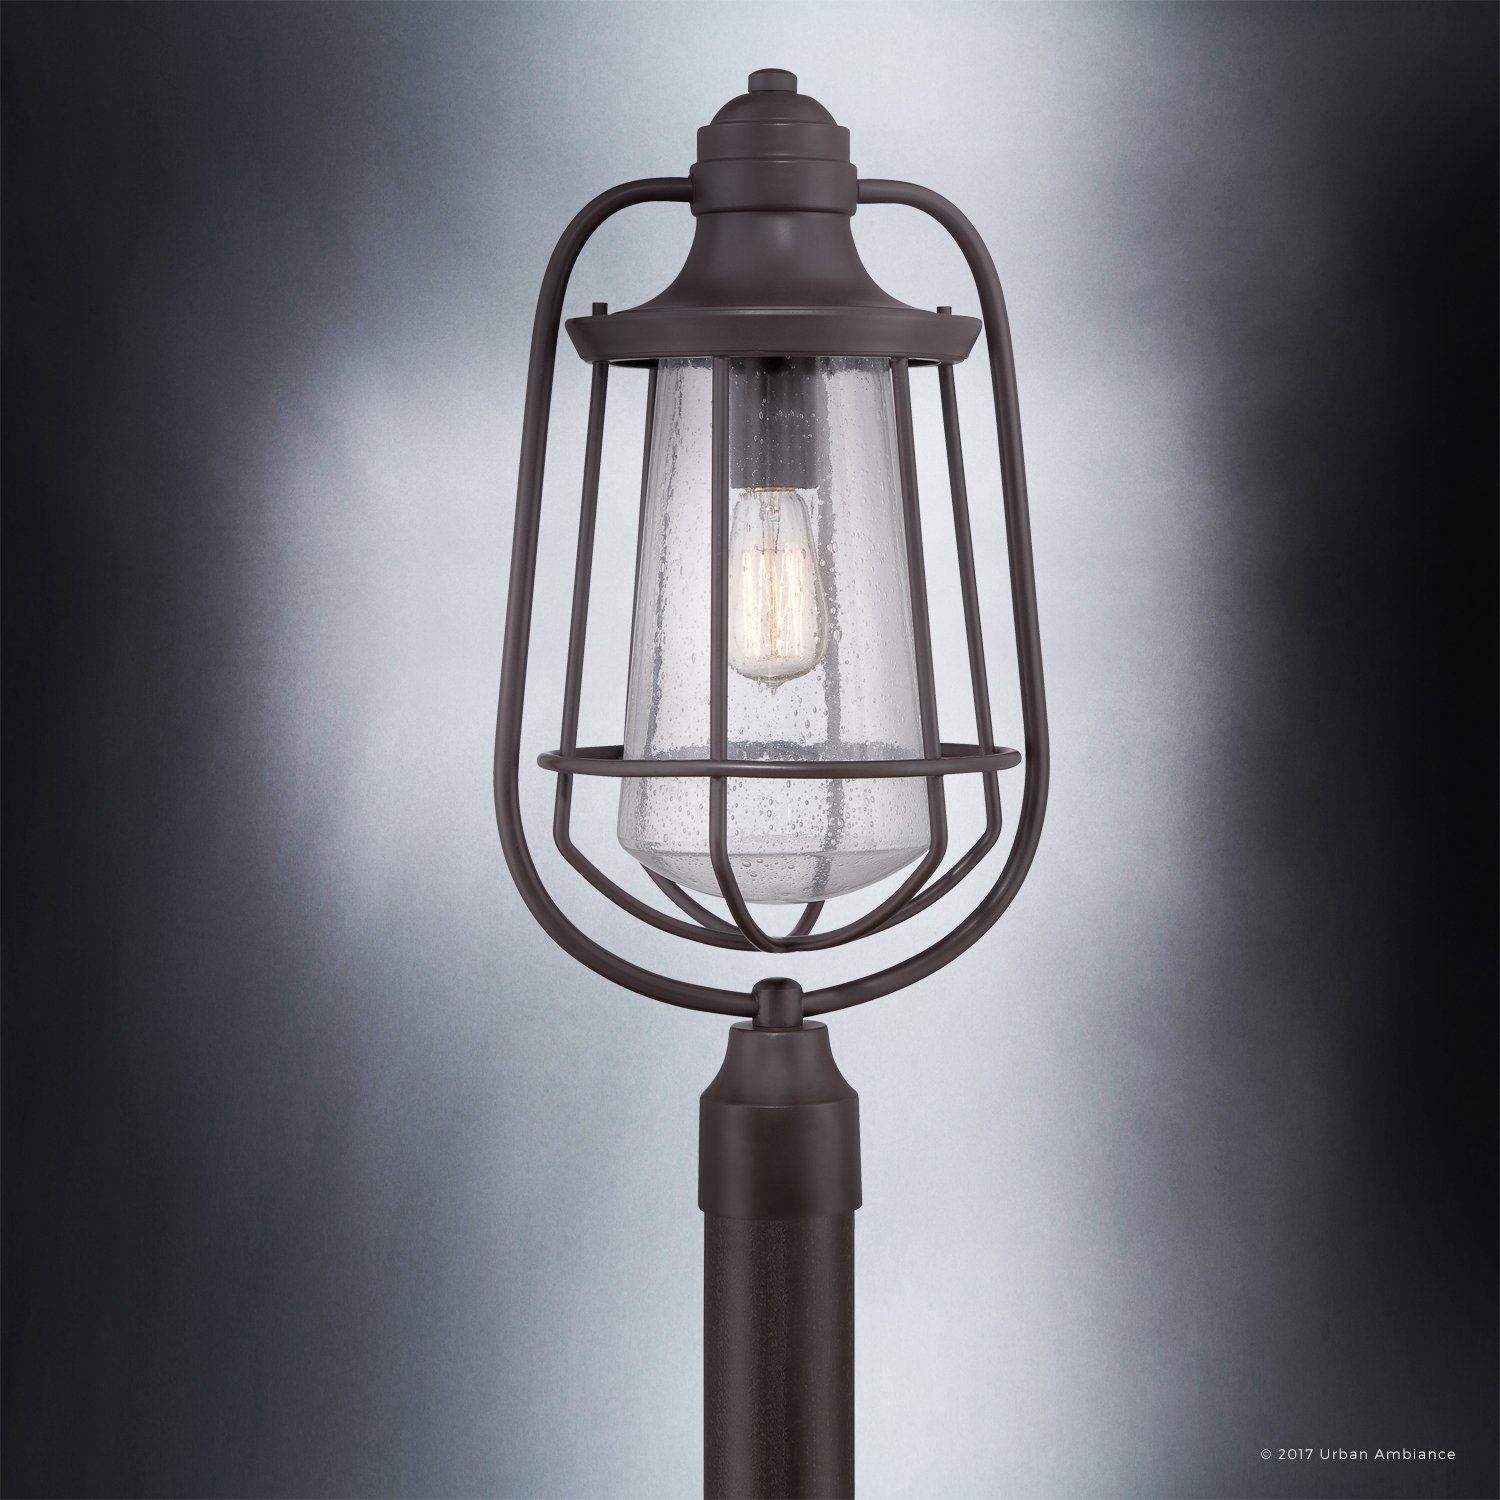 Luxury Vintage Outdoor Post Light, Large Size: 23''H x 11''W, with Nautical Style Elements, Cage Design, Estate Bronze Finish and Seeded Glass, Includes Edison Bulb, UQL1124 by Urban Ambiance by Urban Ambiance (Image #5)